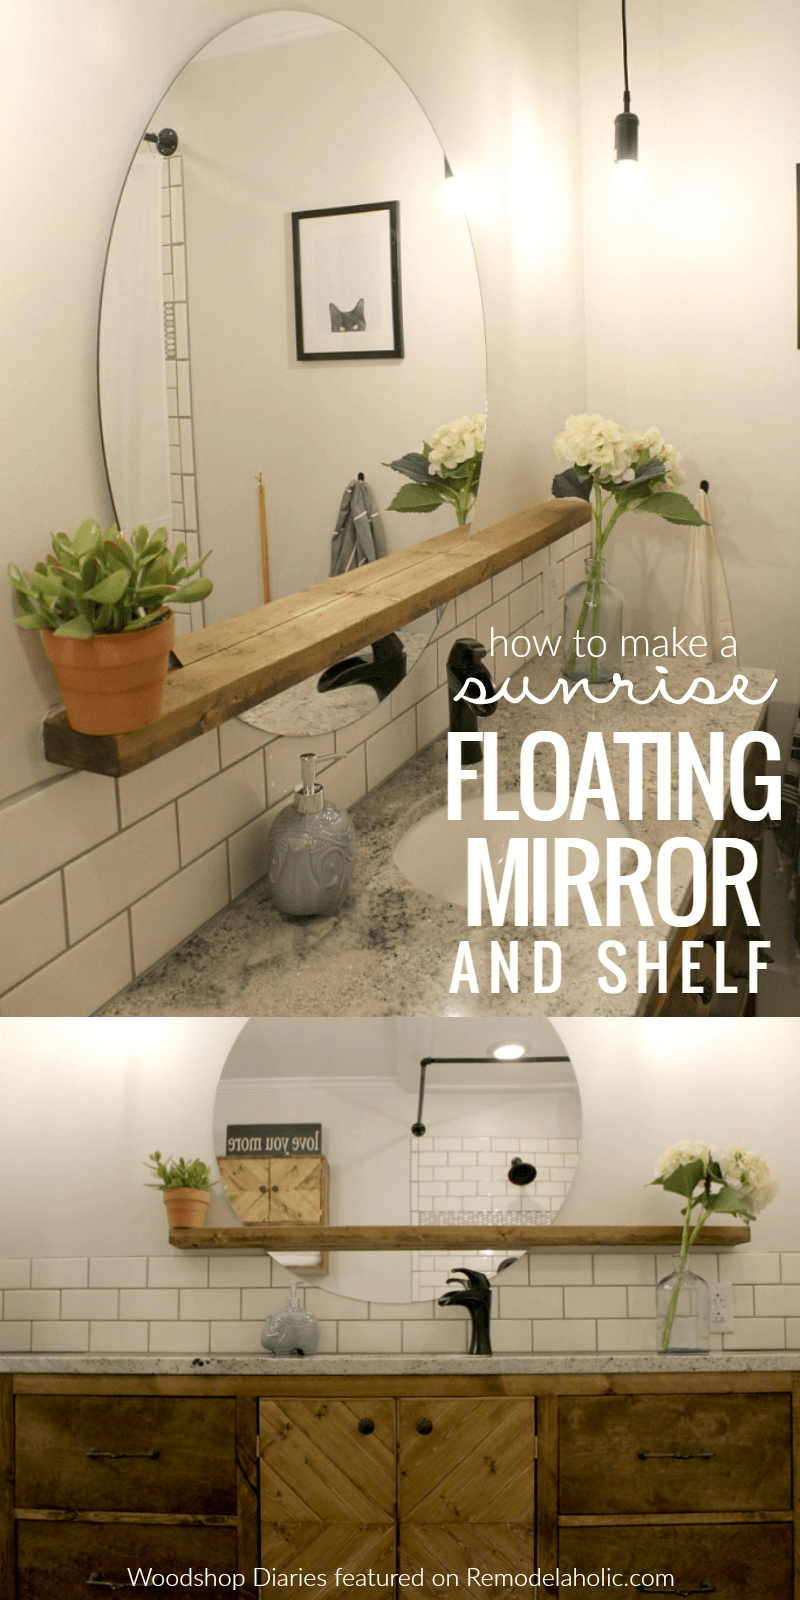 Luxury Lagoon Floating Mirror and Shelf